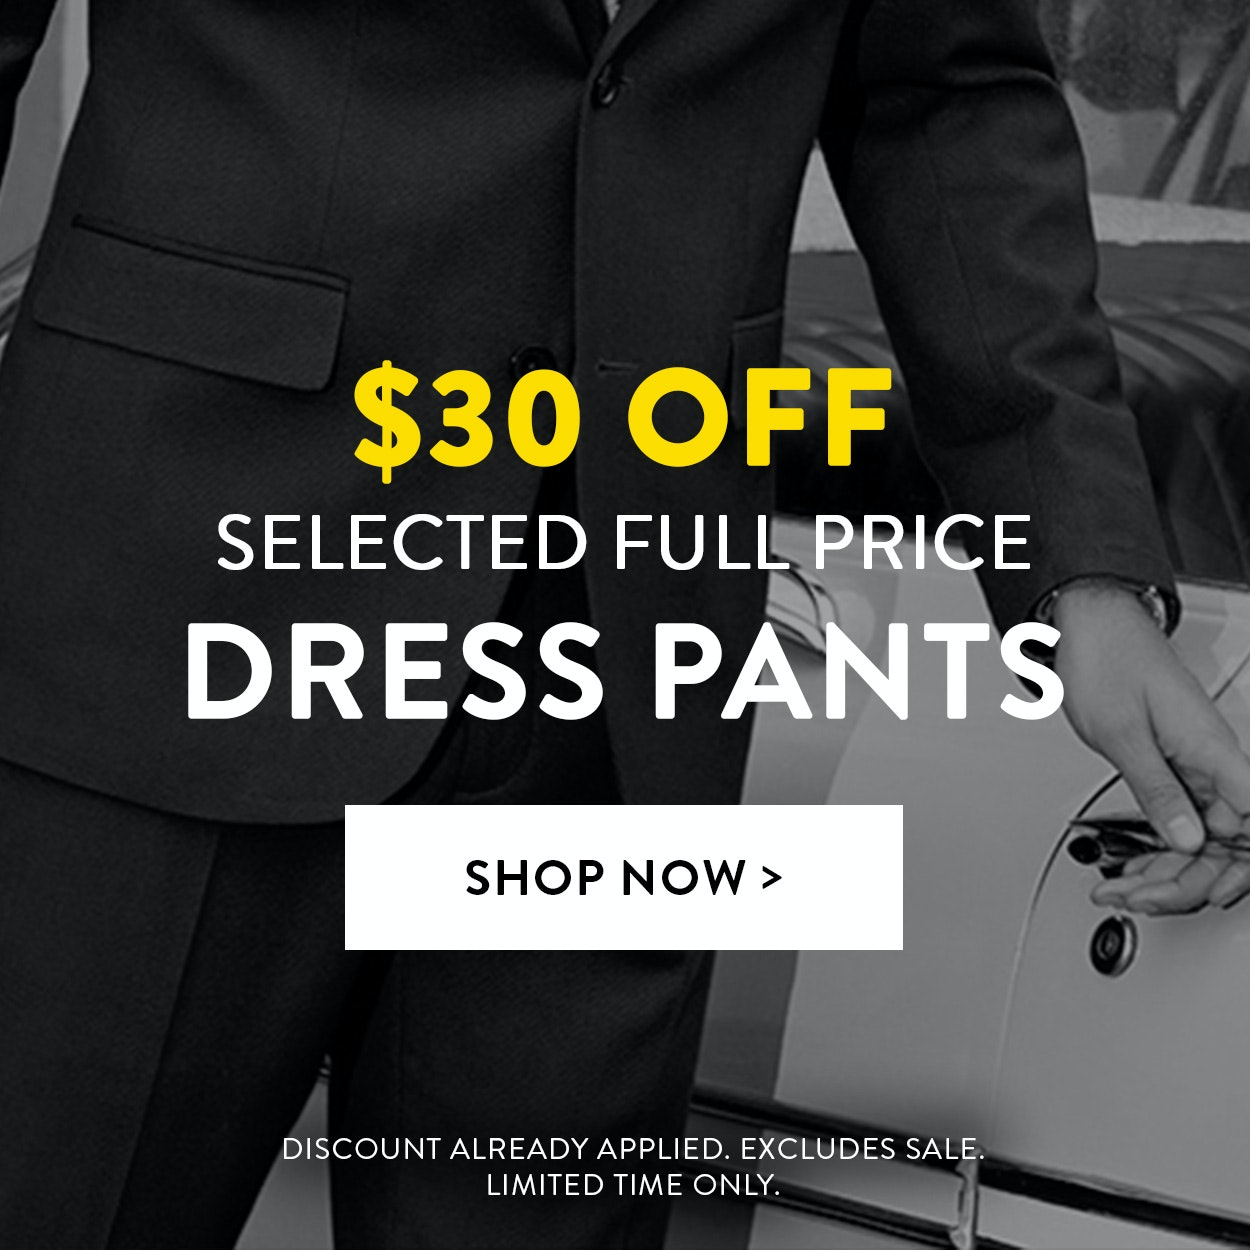 $30 off select full price dress pants